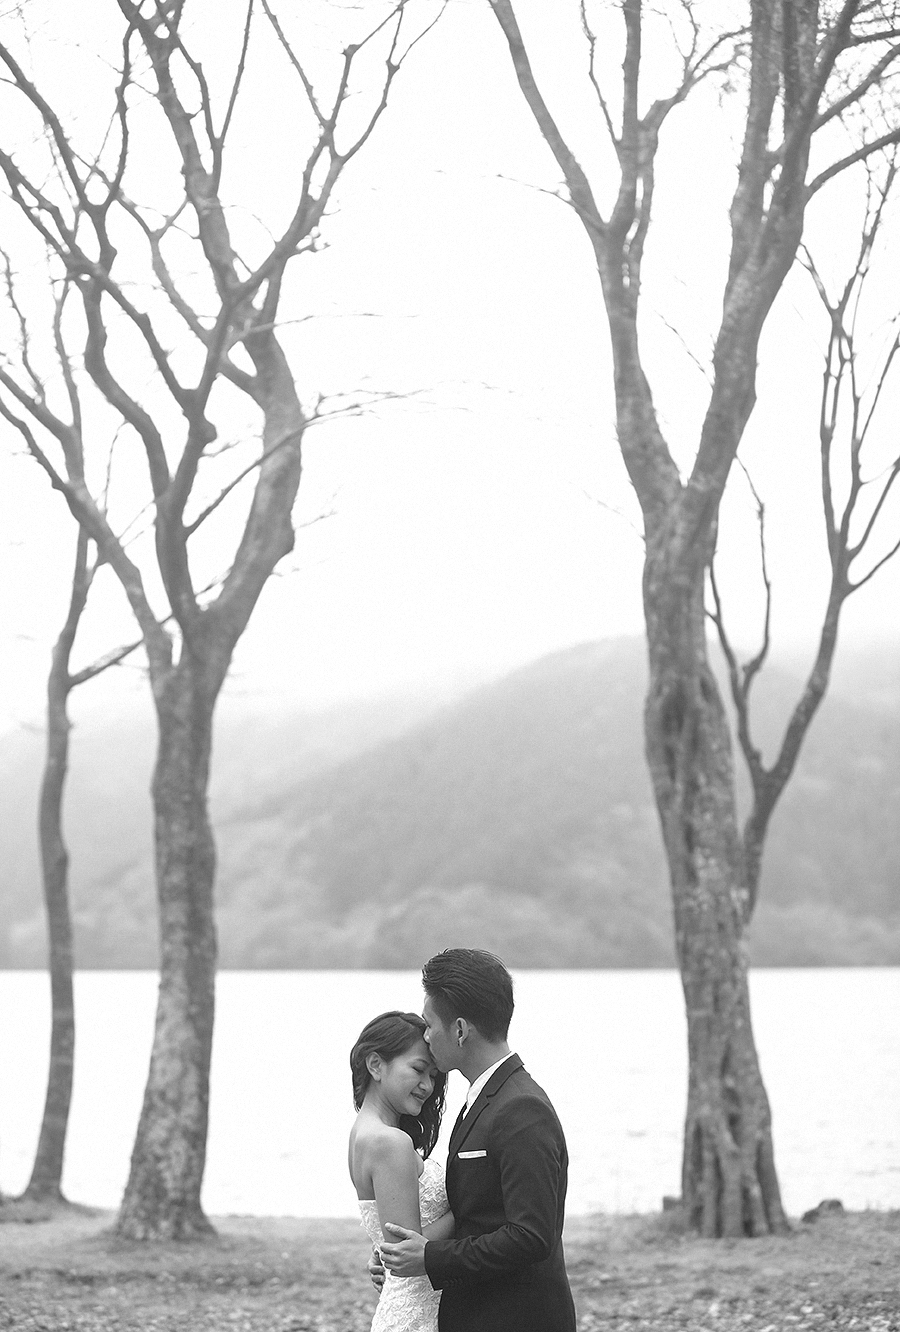 tokyo hakone japan spring sakura . engagement wedding photography by kurt ahs . ns + eu . 0376.jpg